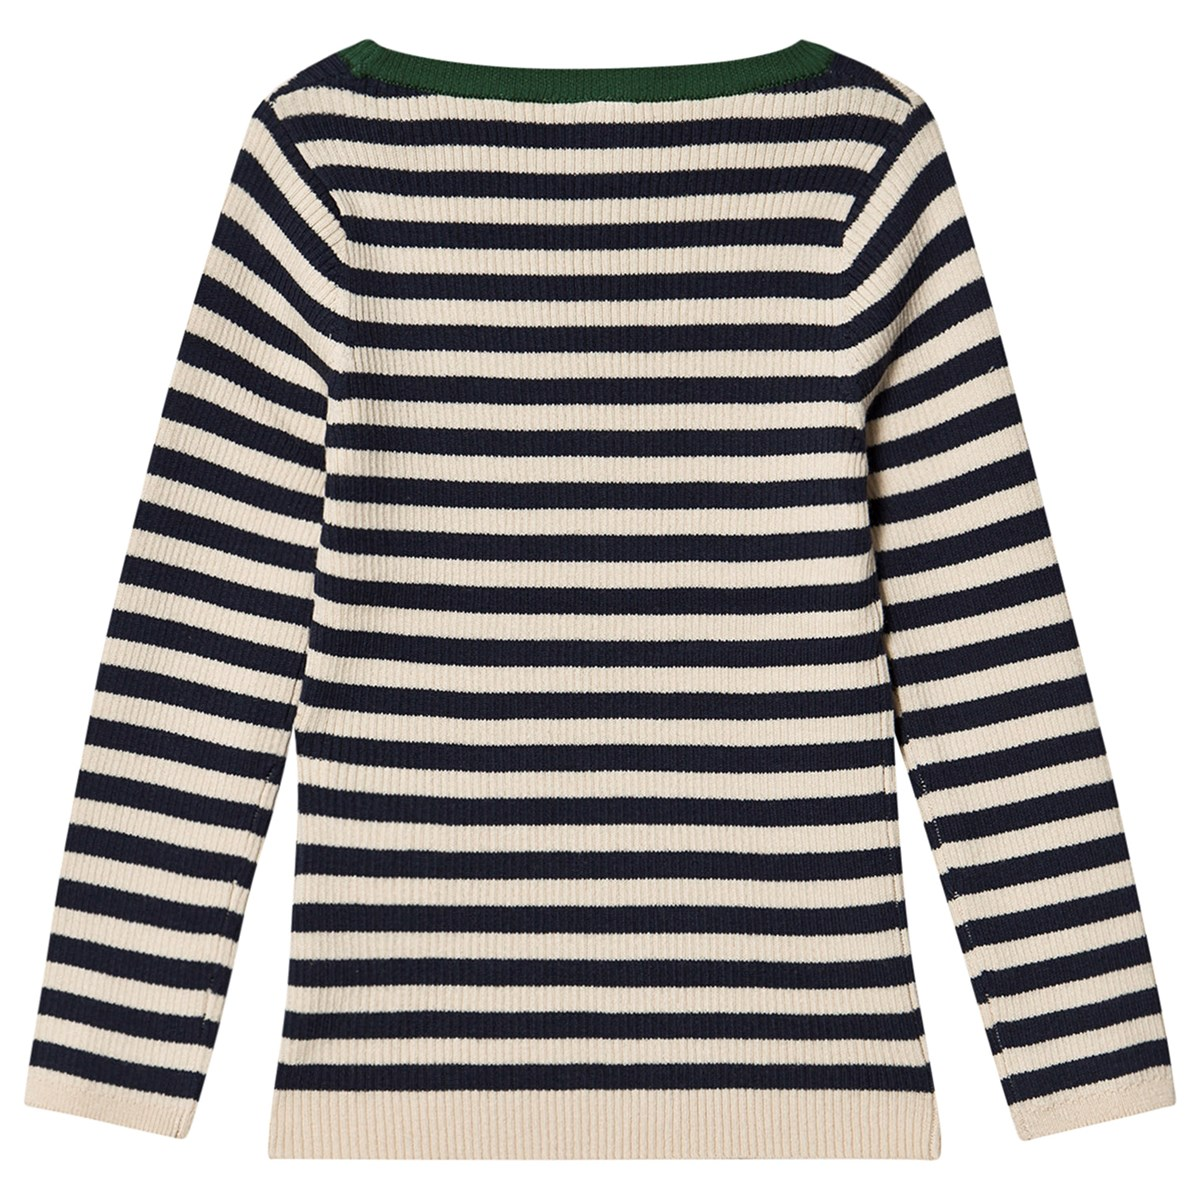 Navy olive striped sweater